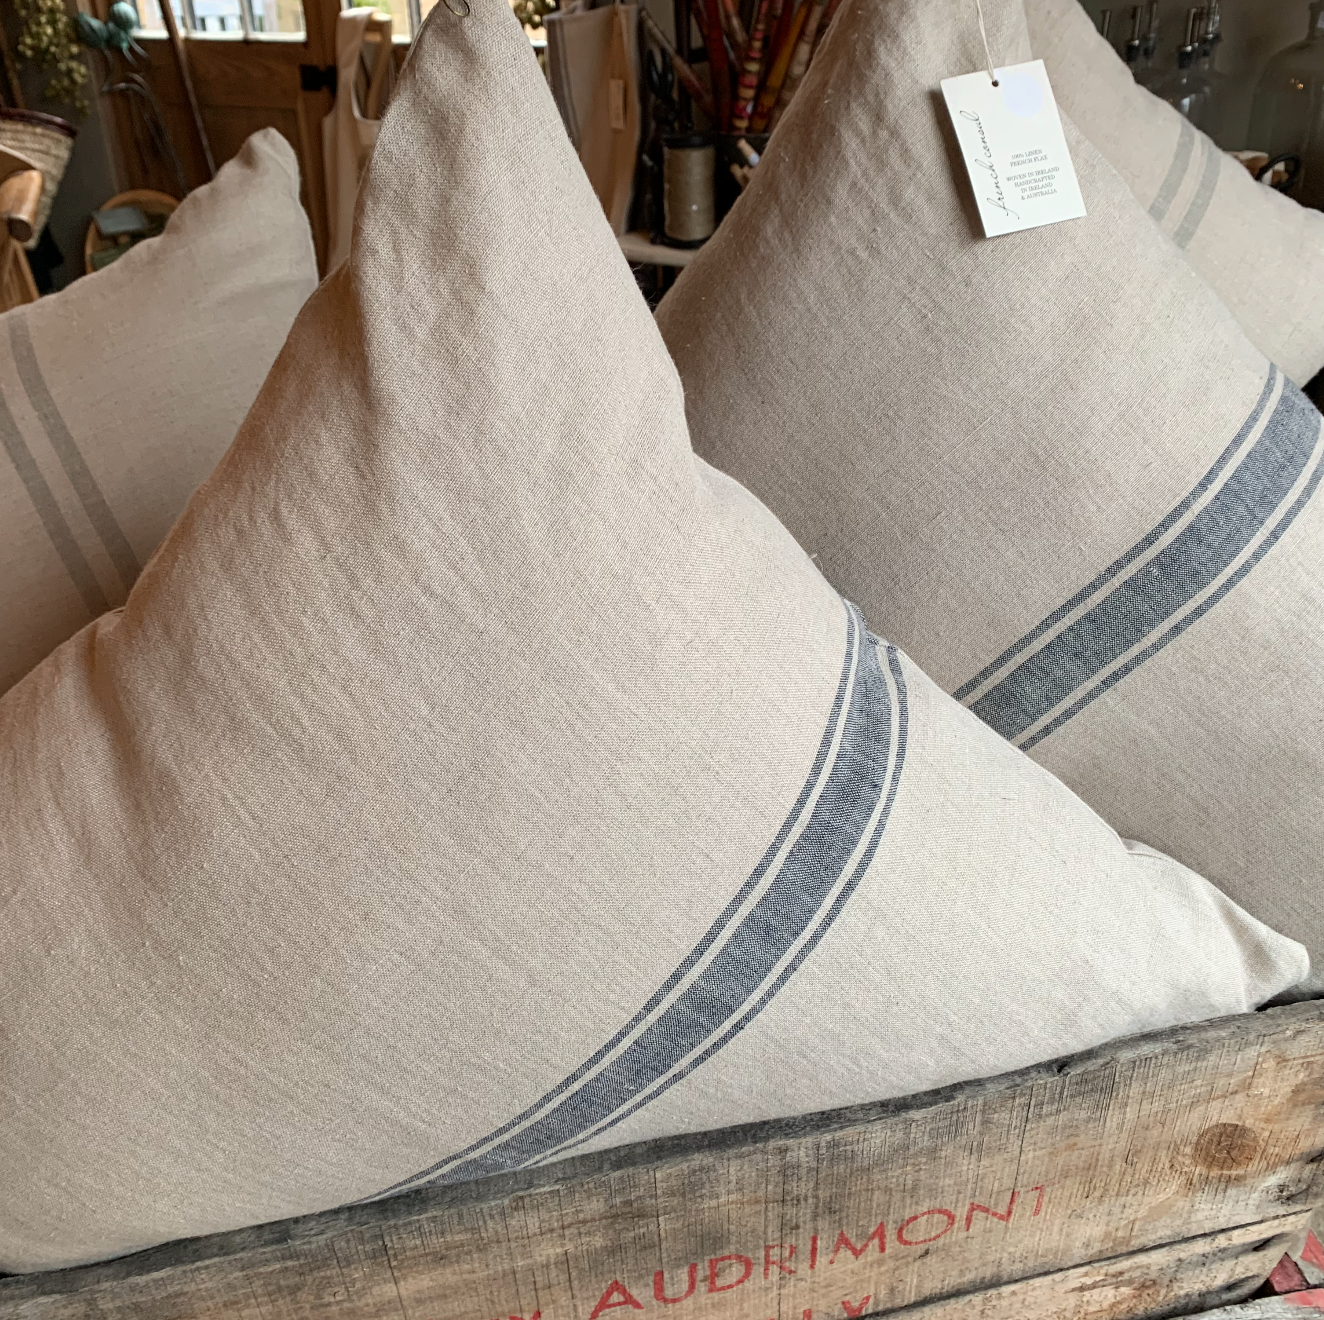 I4 French Consul linen grain sack cushions Bien/navy -Favourite/grey  $149-$169